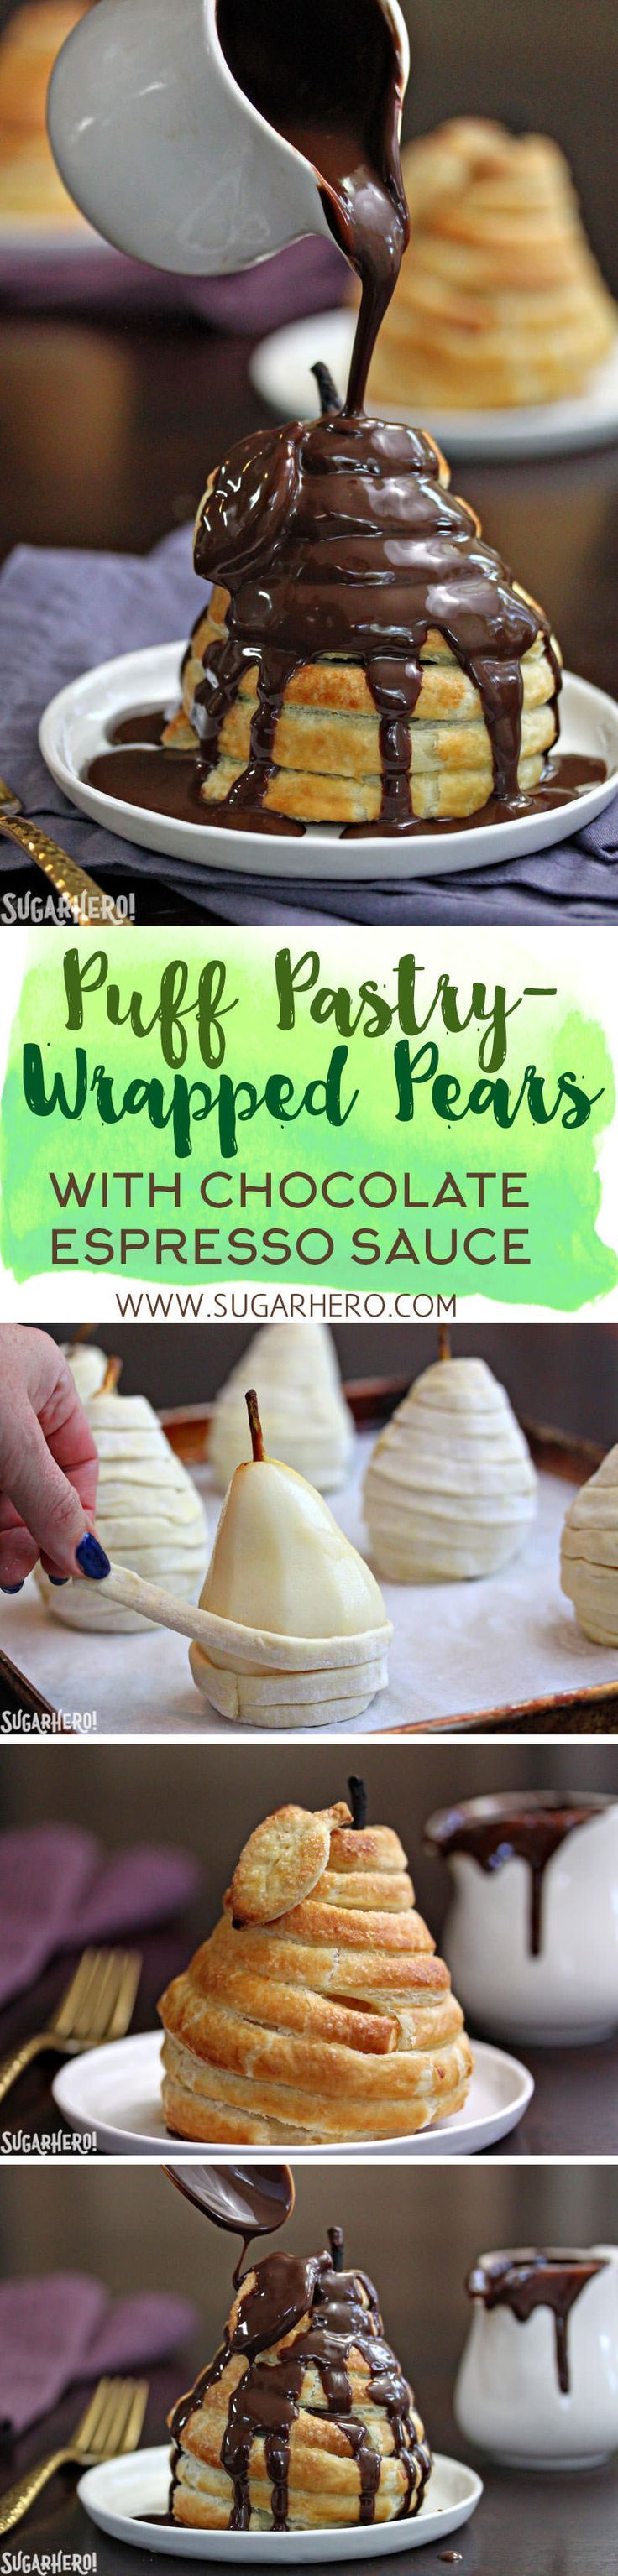 These Puff Pastry-Wrapped Pears are so elegant, you won't believe how easy they are to make! Serve them with chocolate espresso sauce for the perfect bittersweet accompaniment.   From http://SugarHero.com